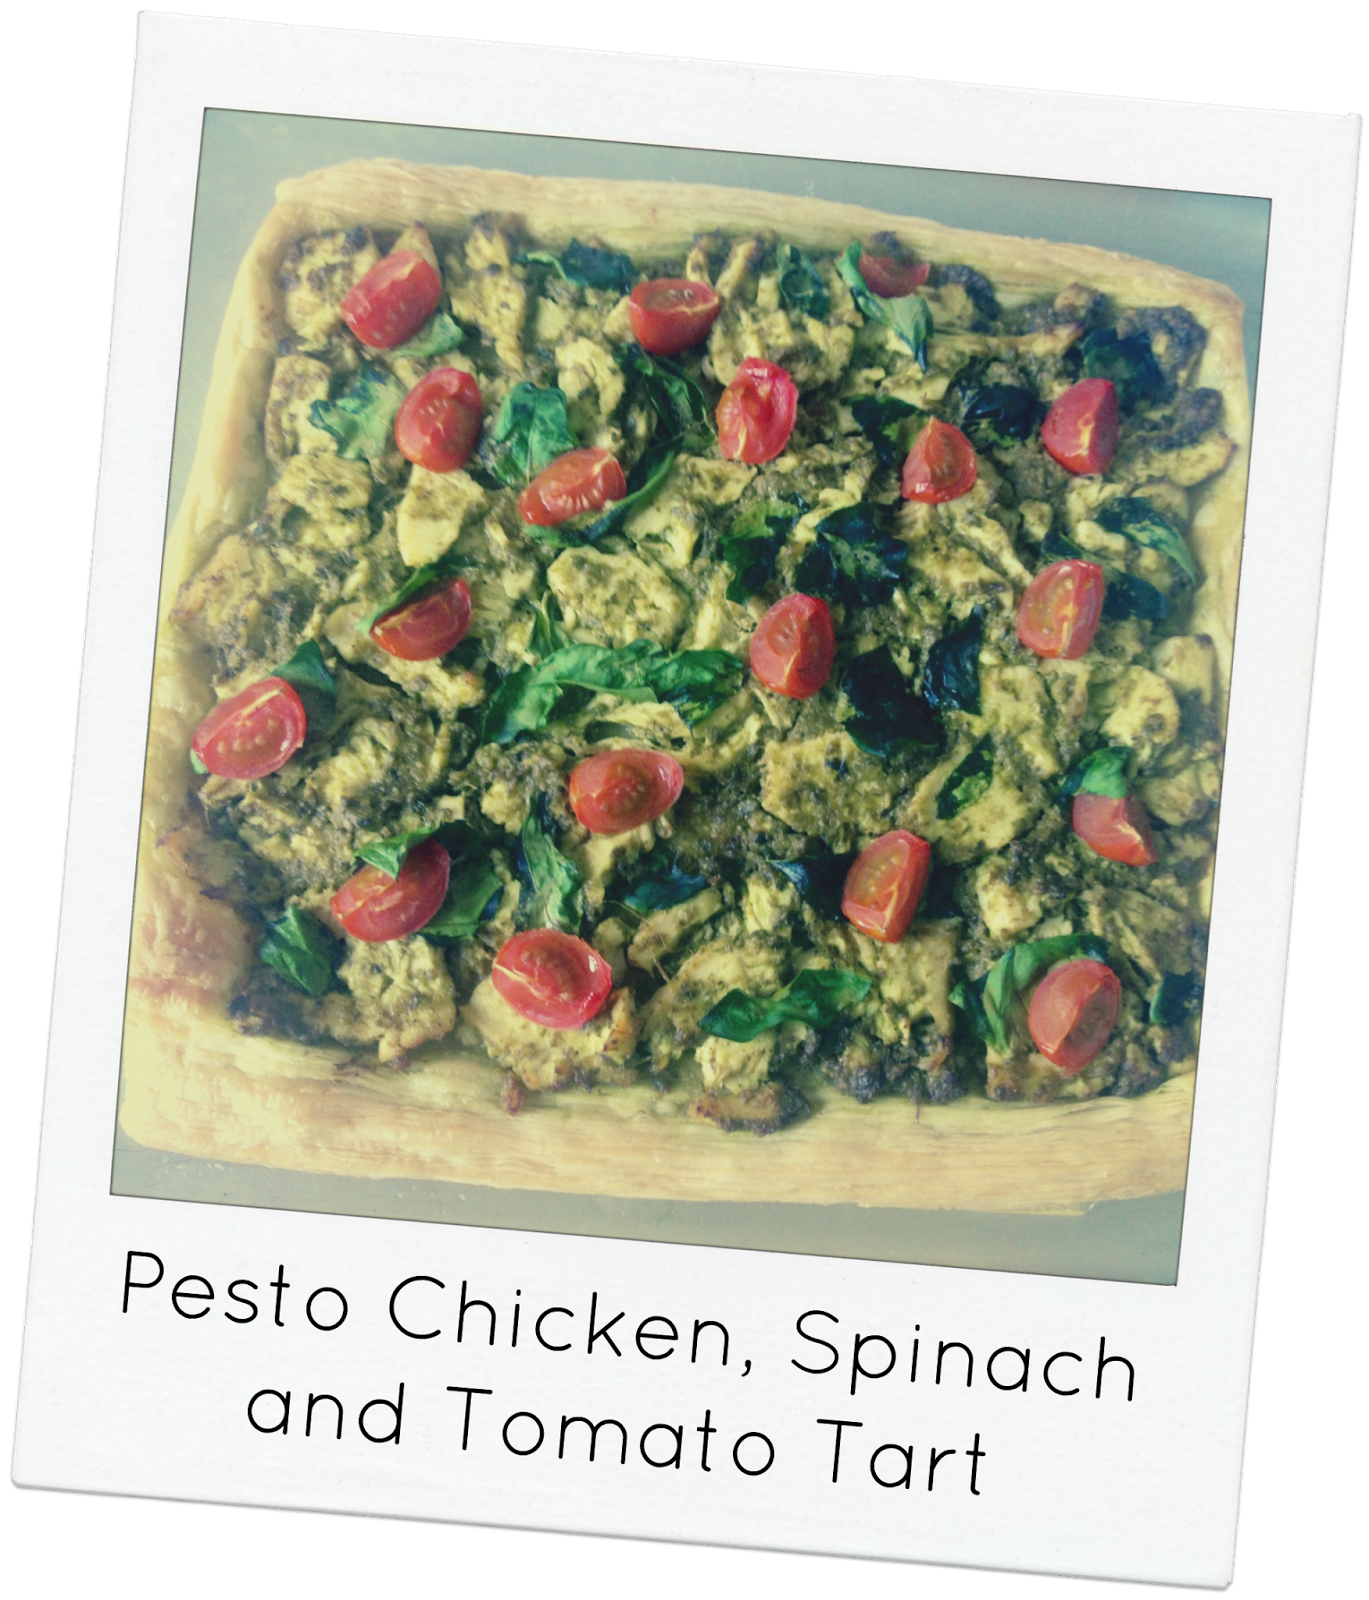 Pesto Chicken, Spinach and Tomato Tart | Food - bring on ...